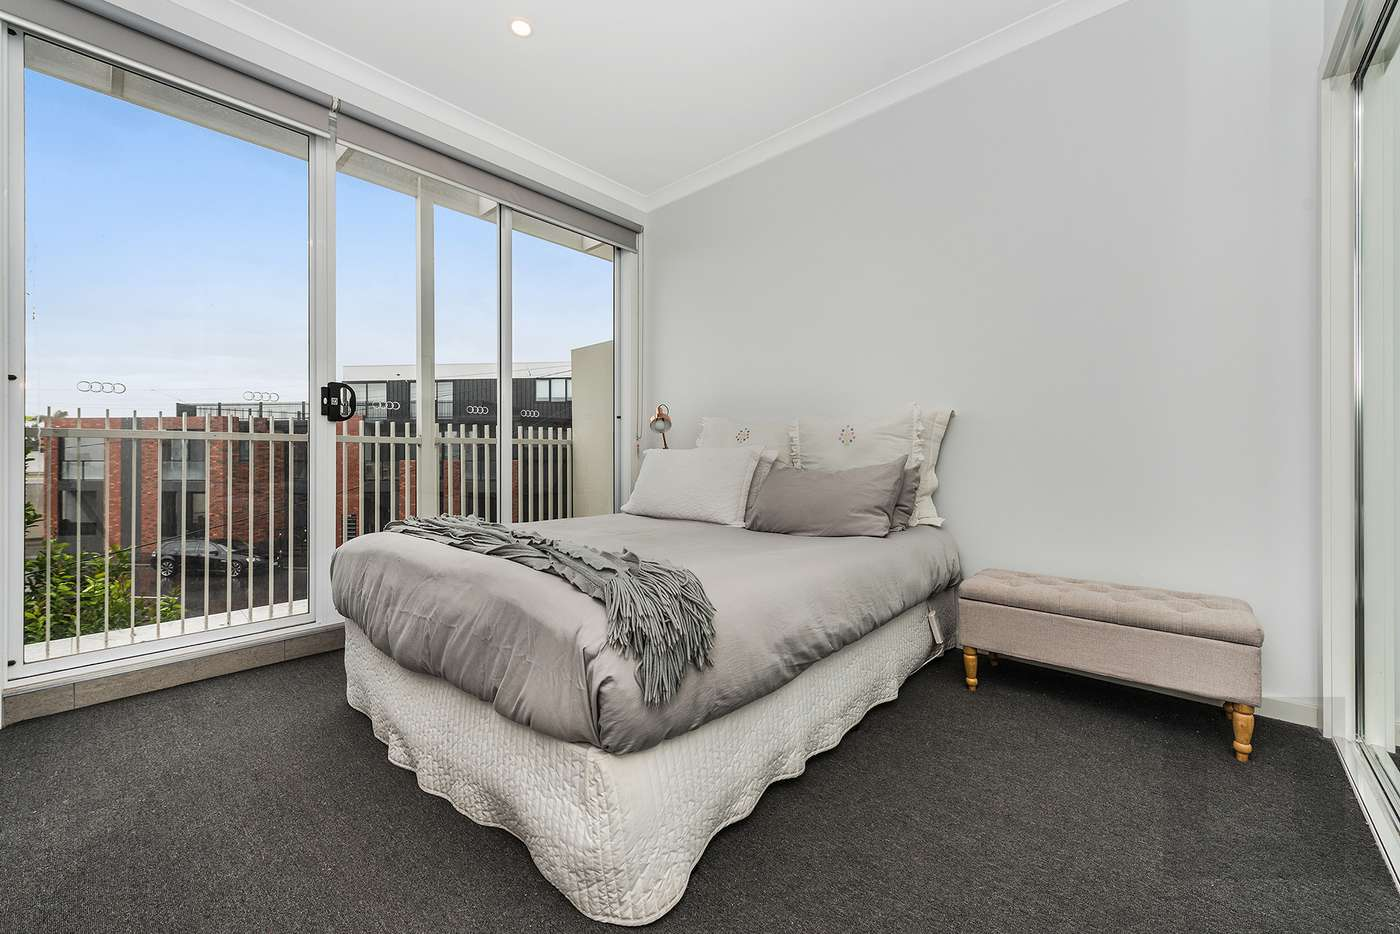 Fifth view of Homely apartment listing, 108/127 Douglas Parade, Williamstown VIC 3016